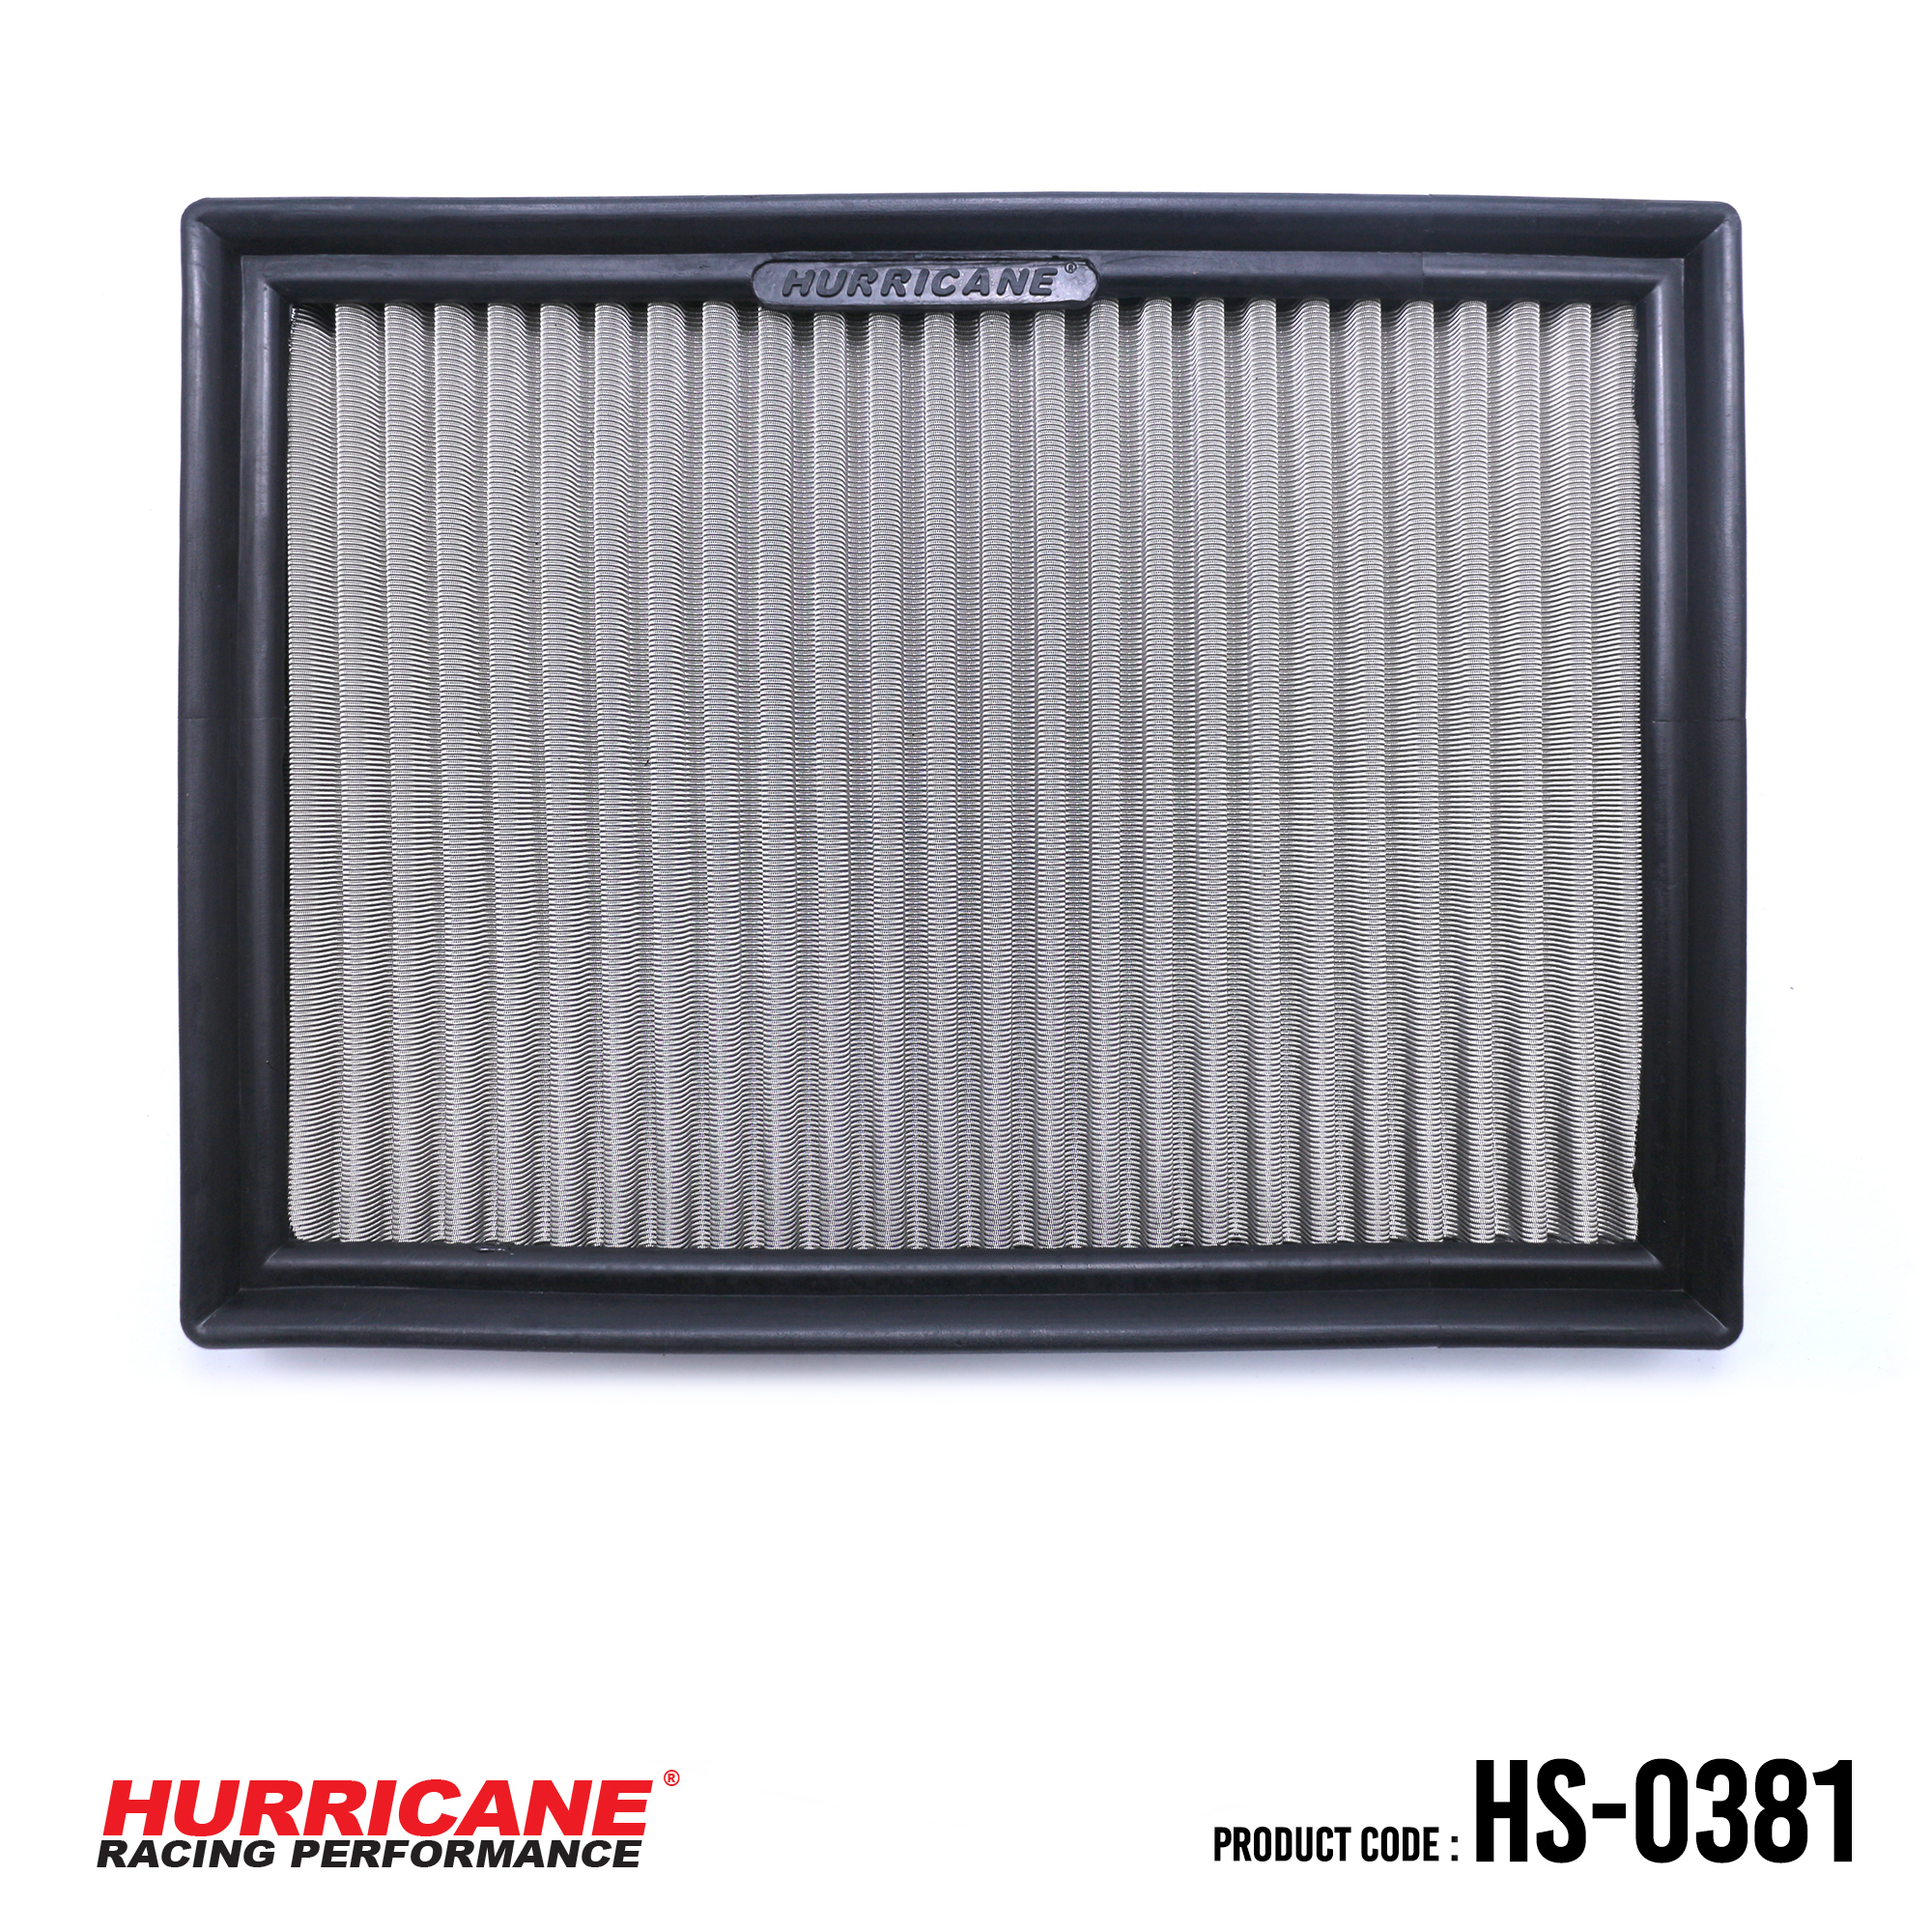 HURRICANE STAINLESS STEEL AIR FILTER FOR HS-0381 MG